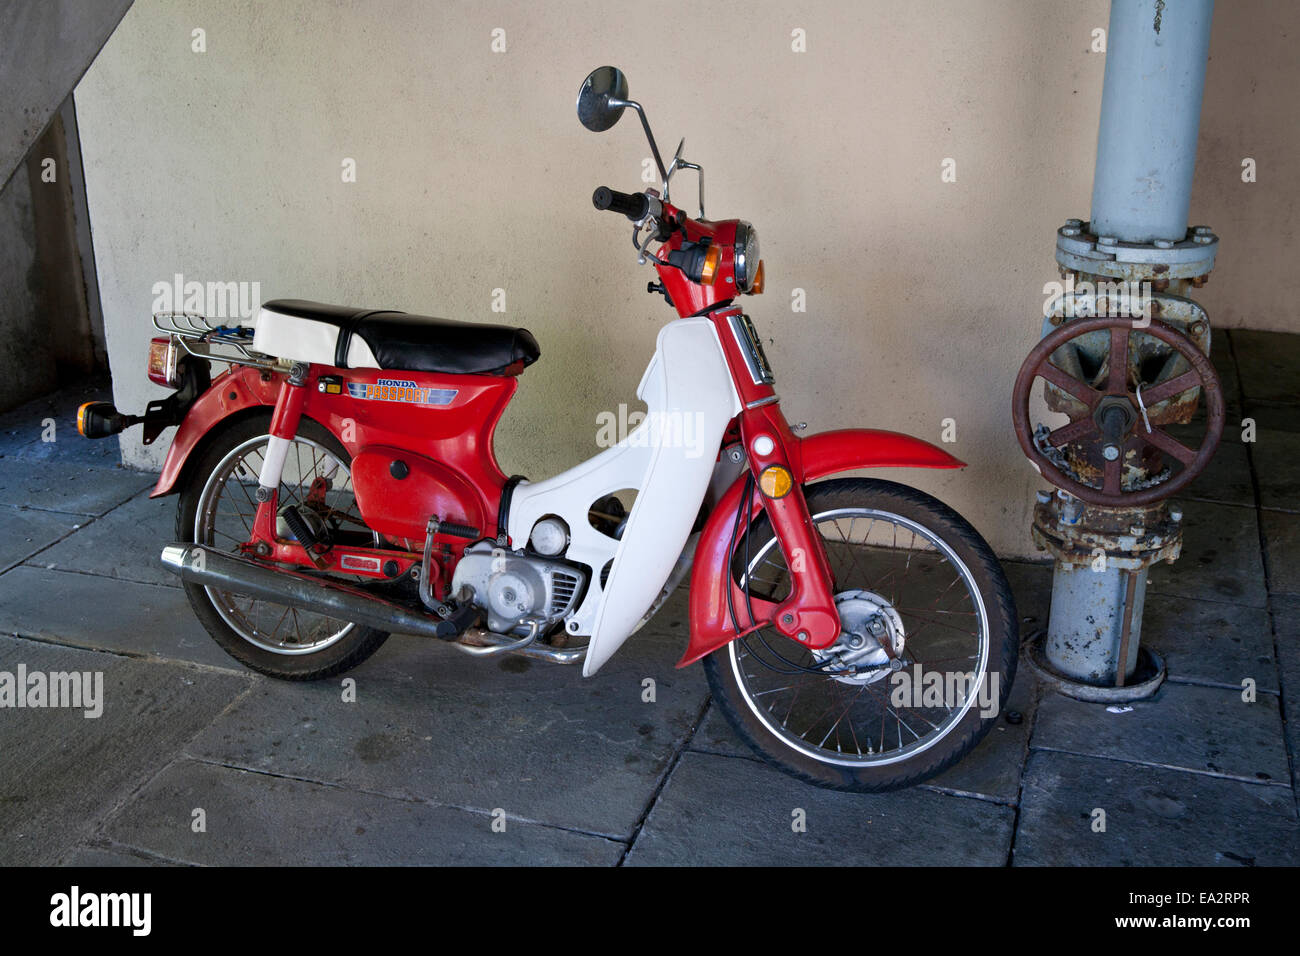 Honda Motor Scooter Stock Photos Honda Motor Scooter Stock Images